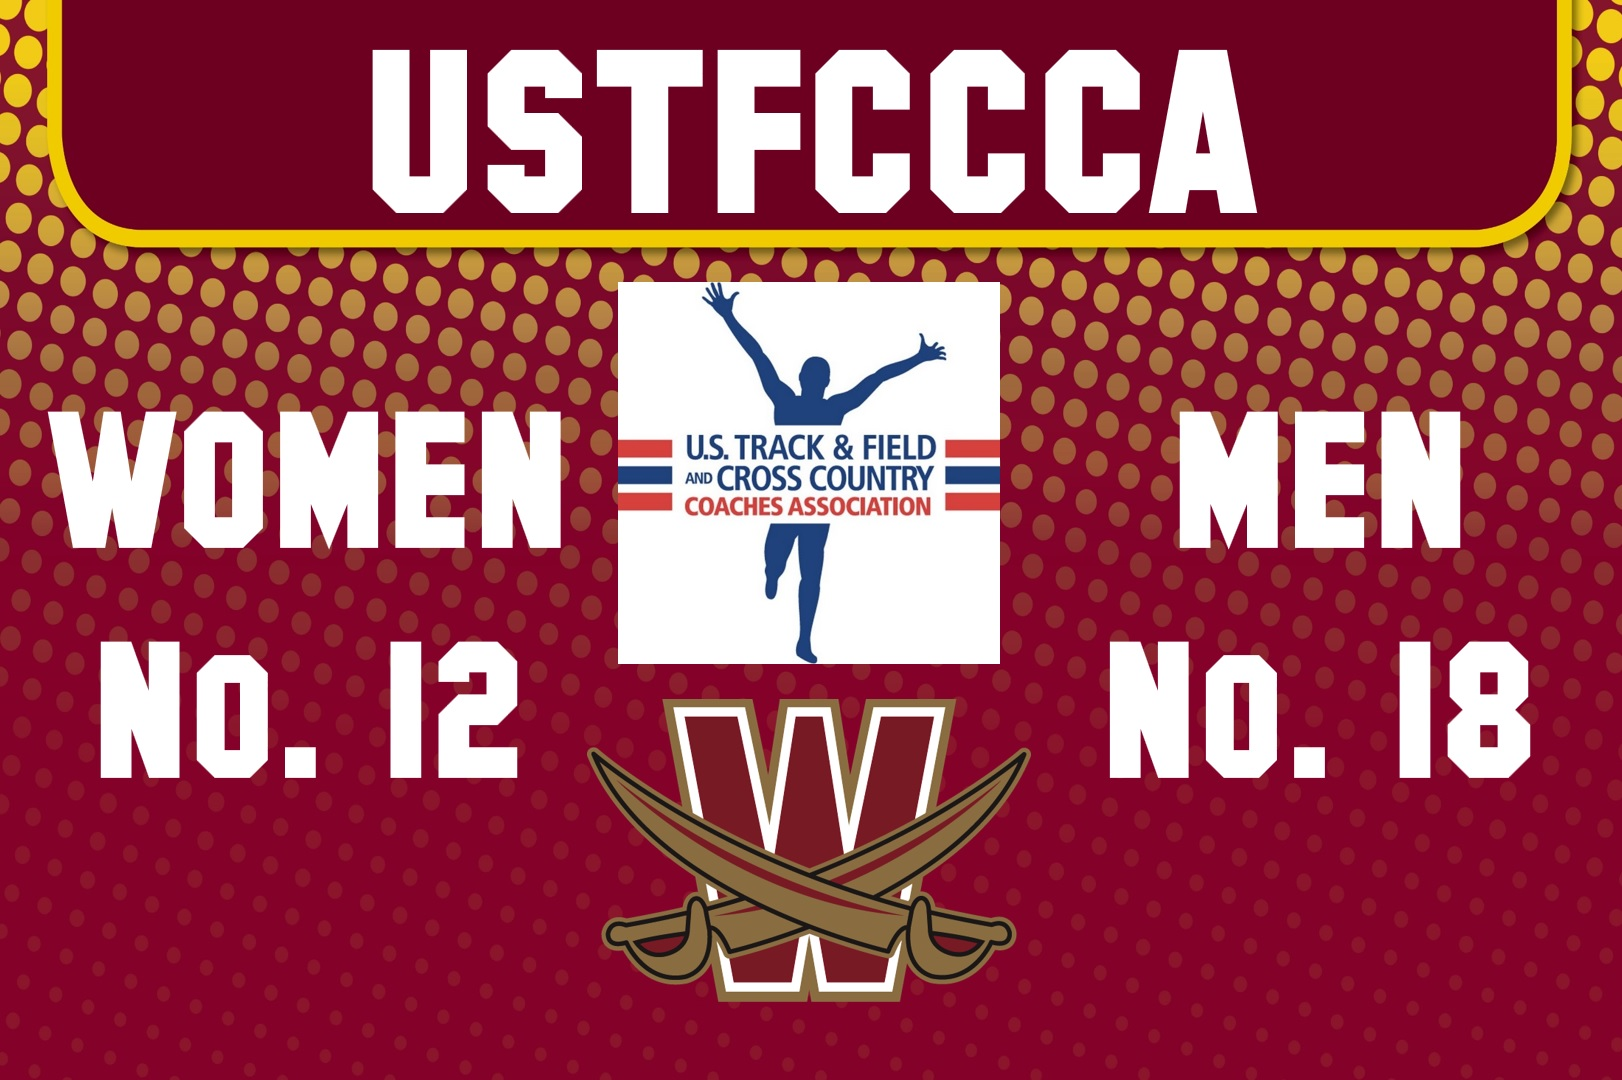 Women No. 12, Men No. 18 In New National Cross Country Polls